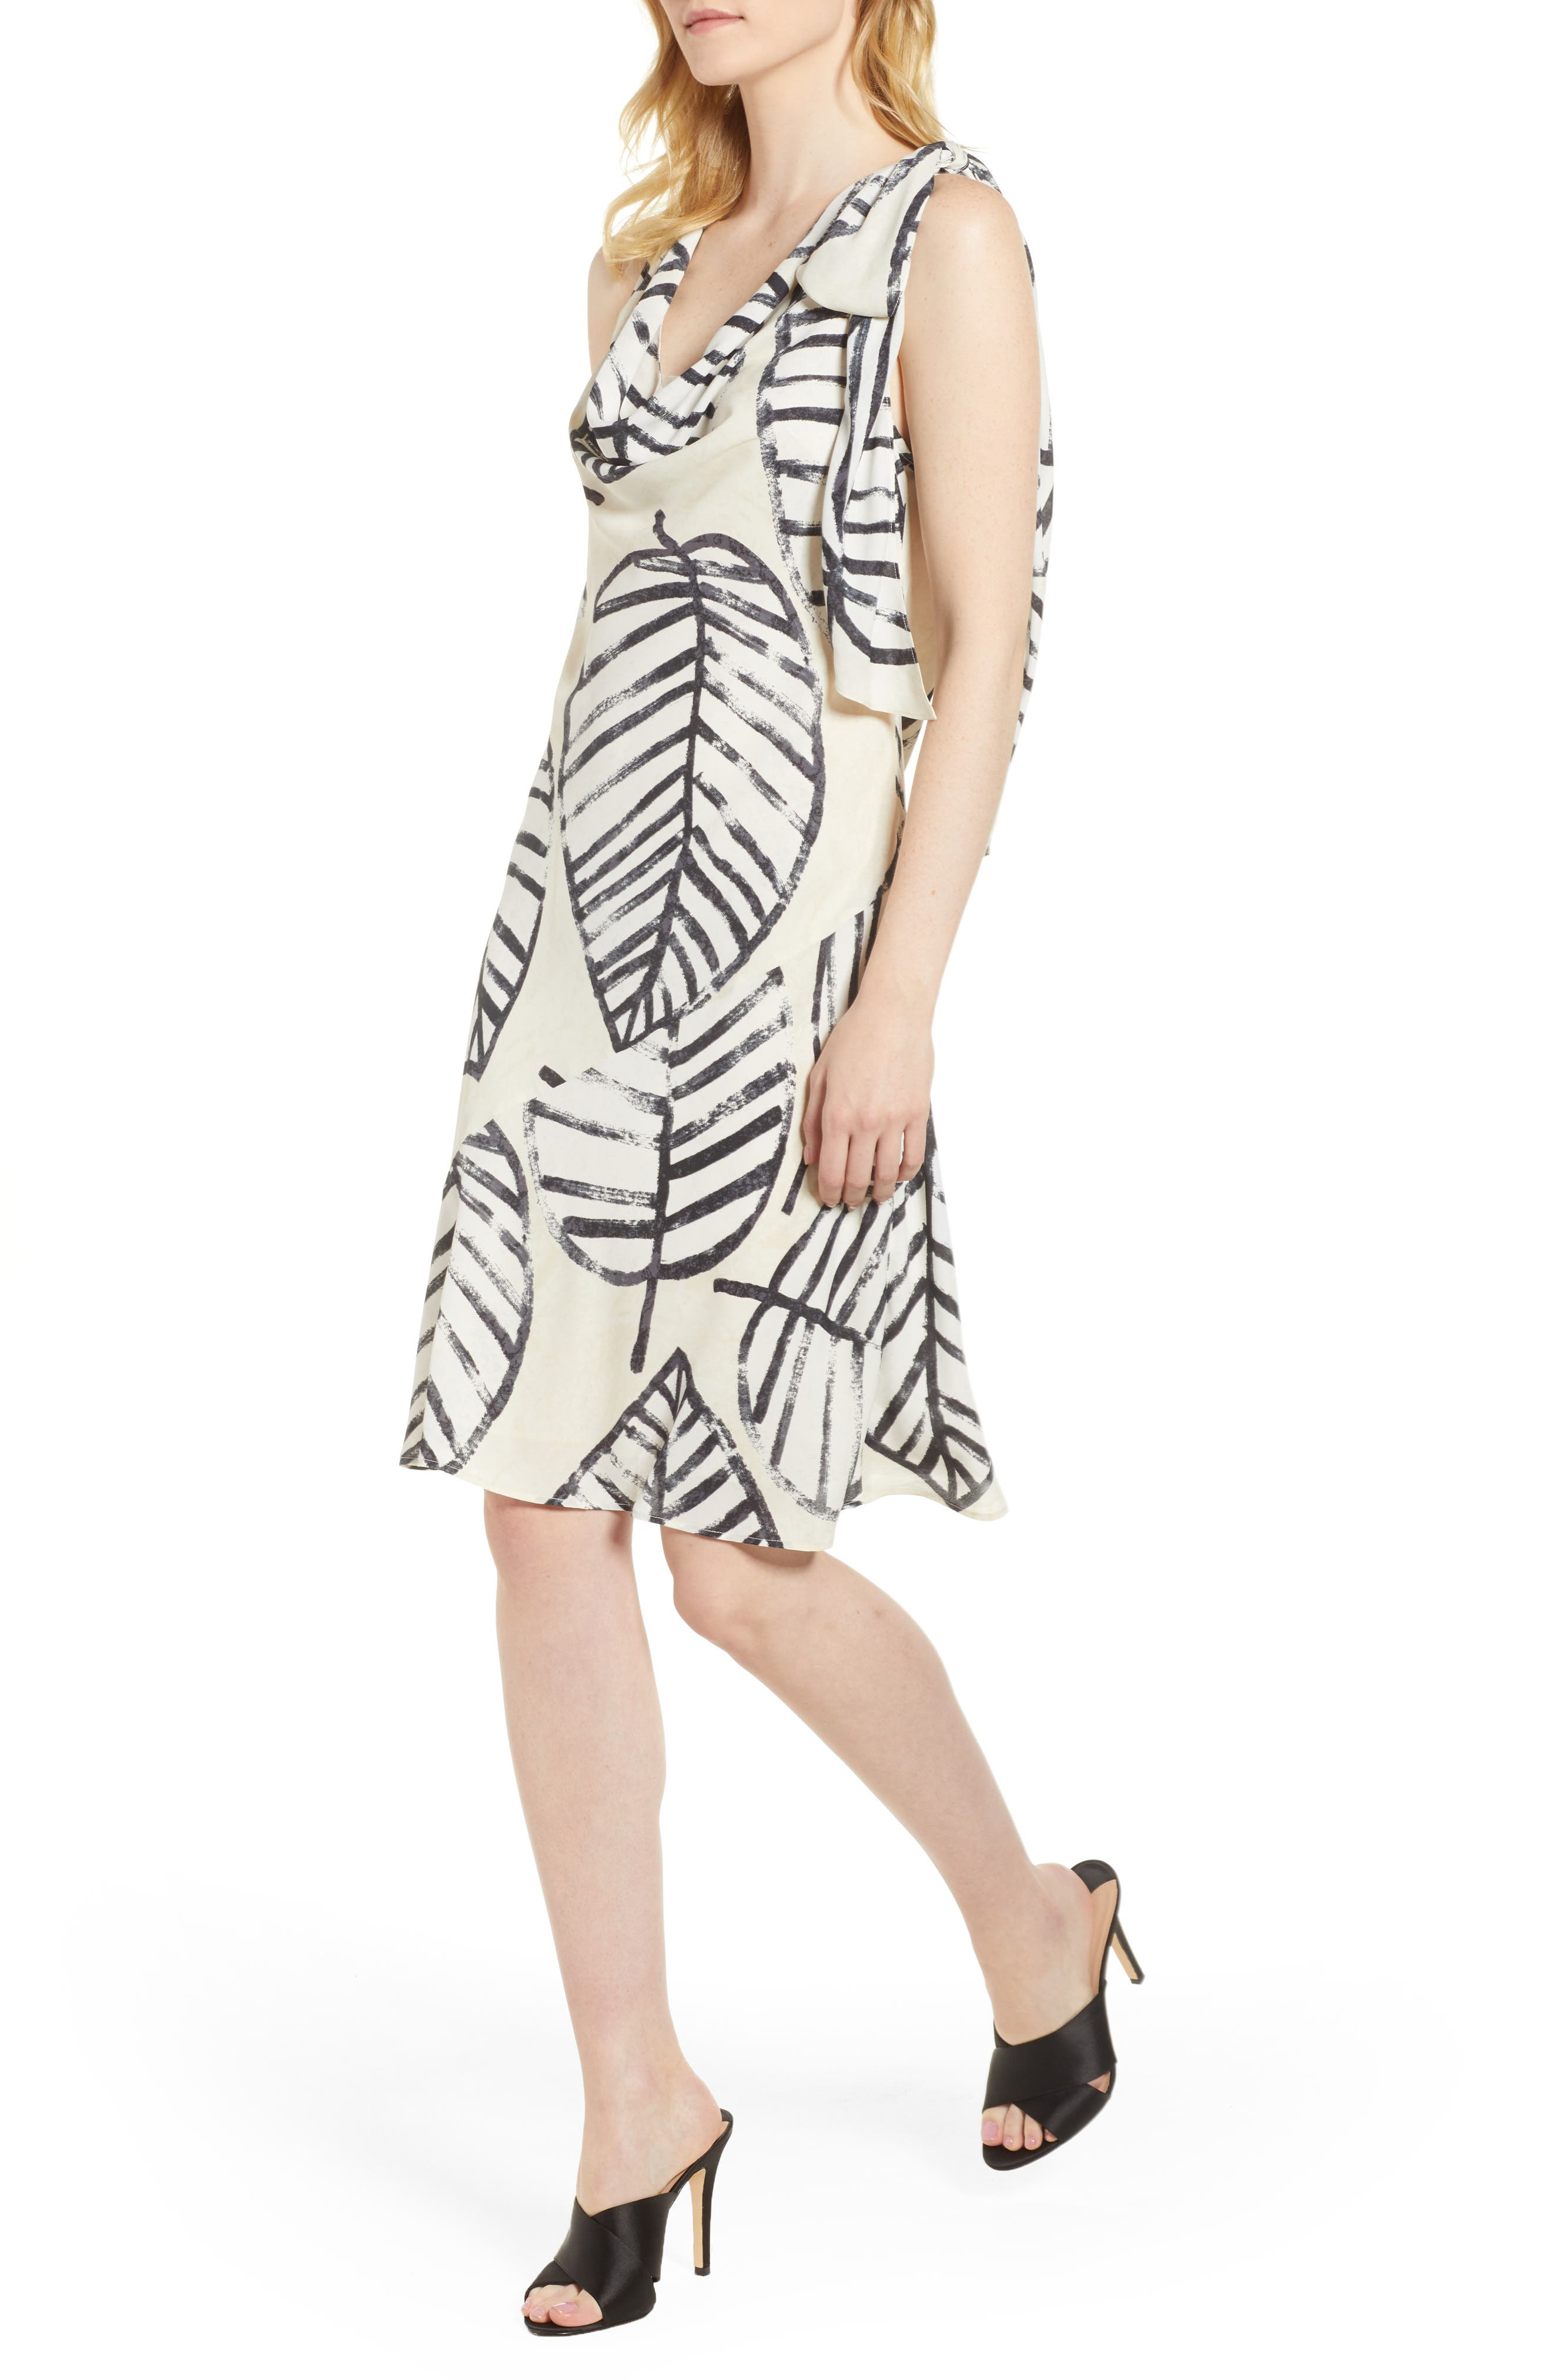 Etched Leaves Tie Dress,                             Main thumbnail 1, color,                             Multi